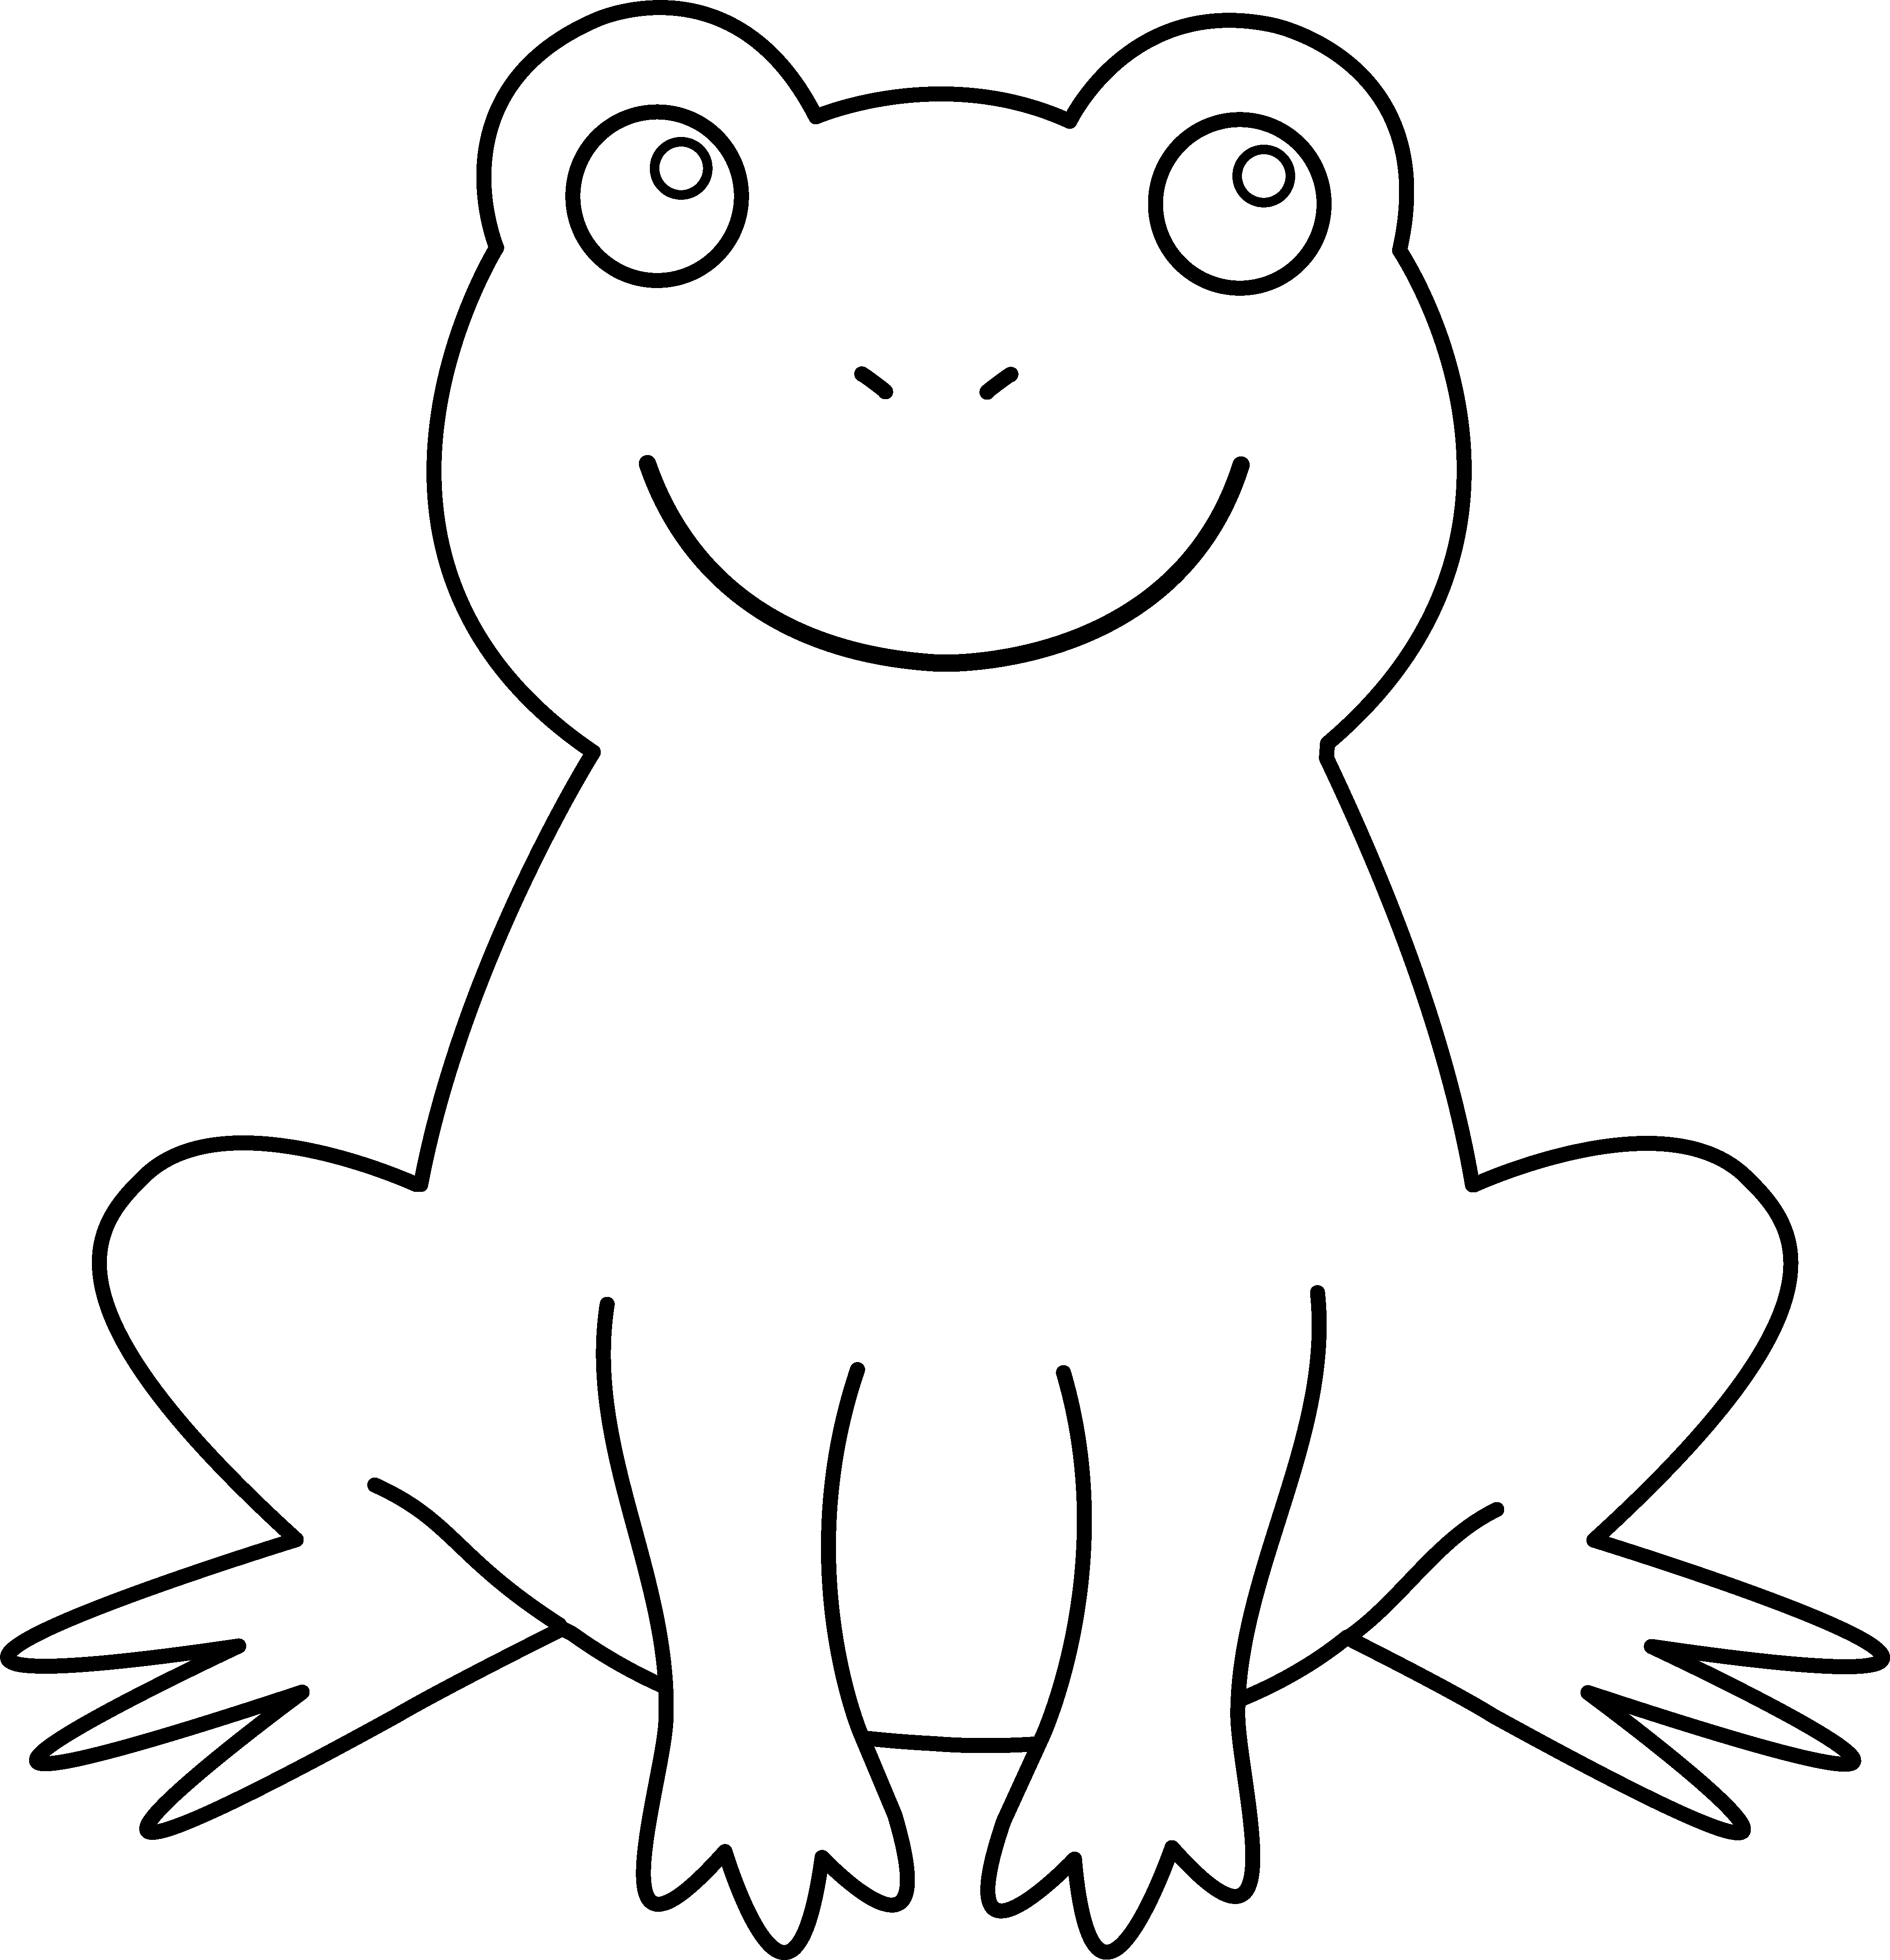 Black And White Frog Frog Coloring Pages Frog Drawing Frog Outline